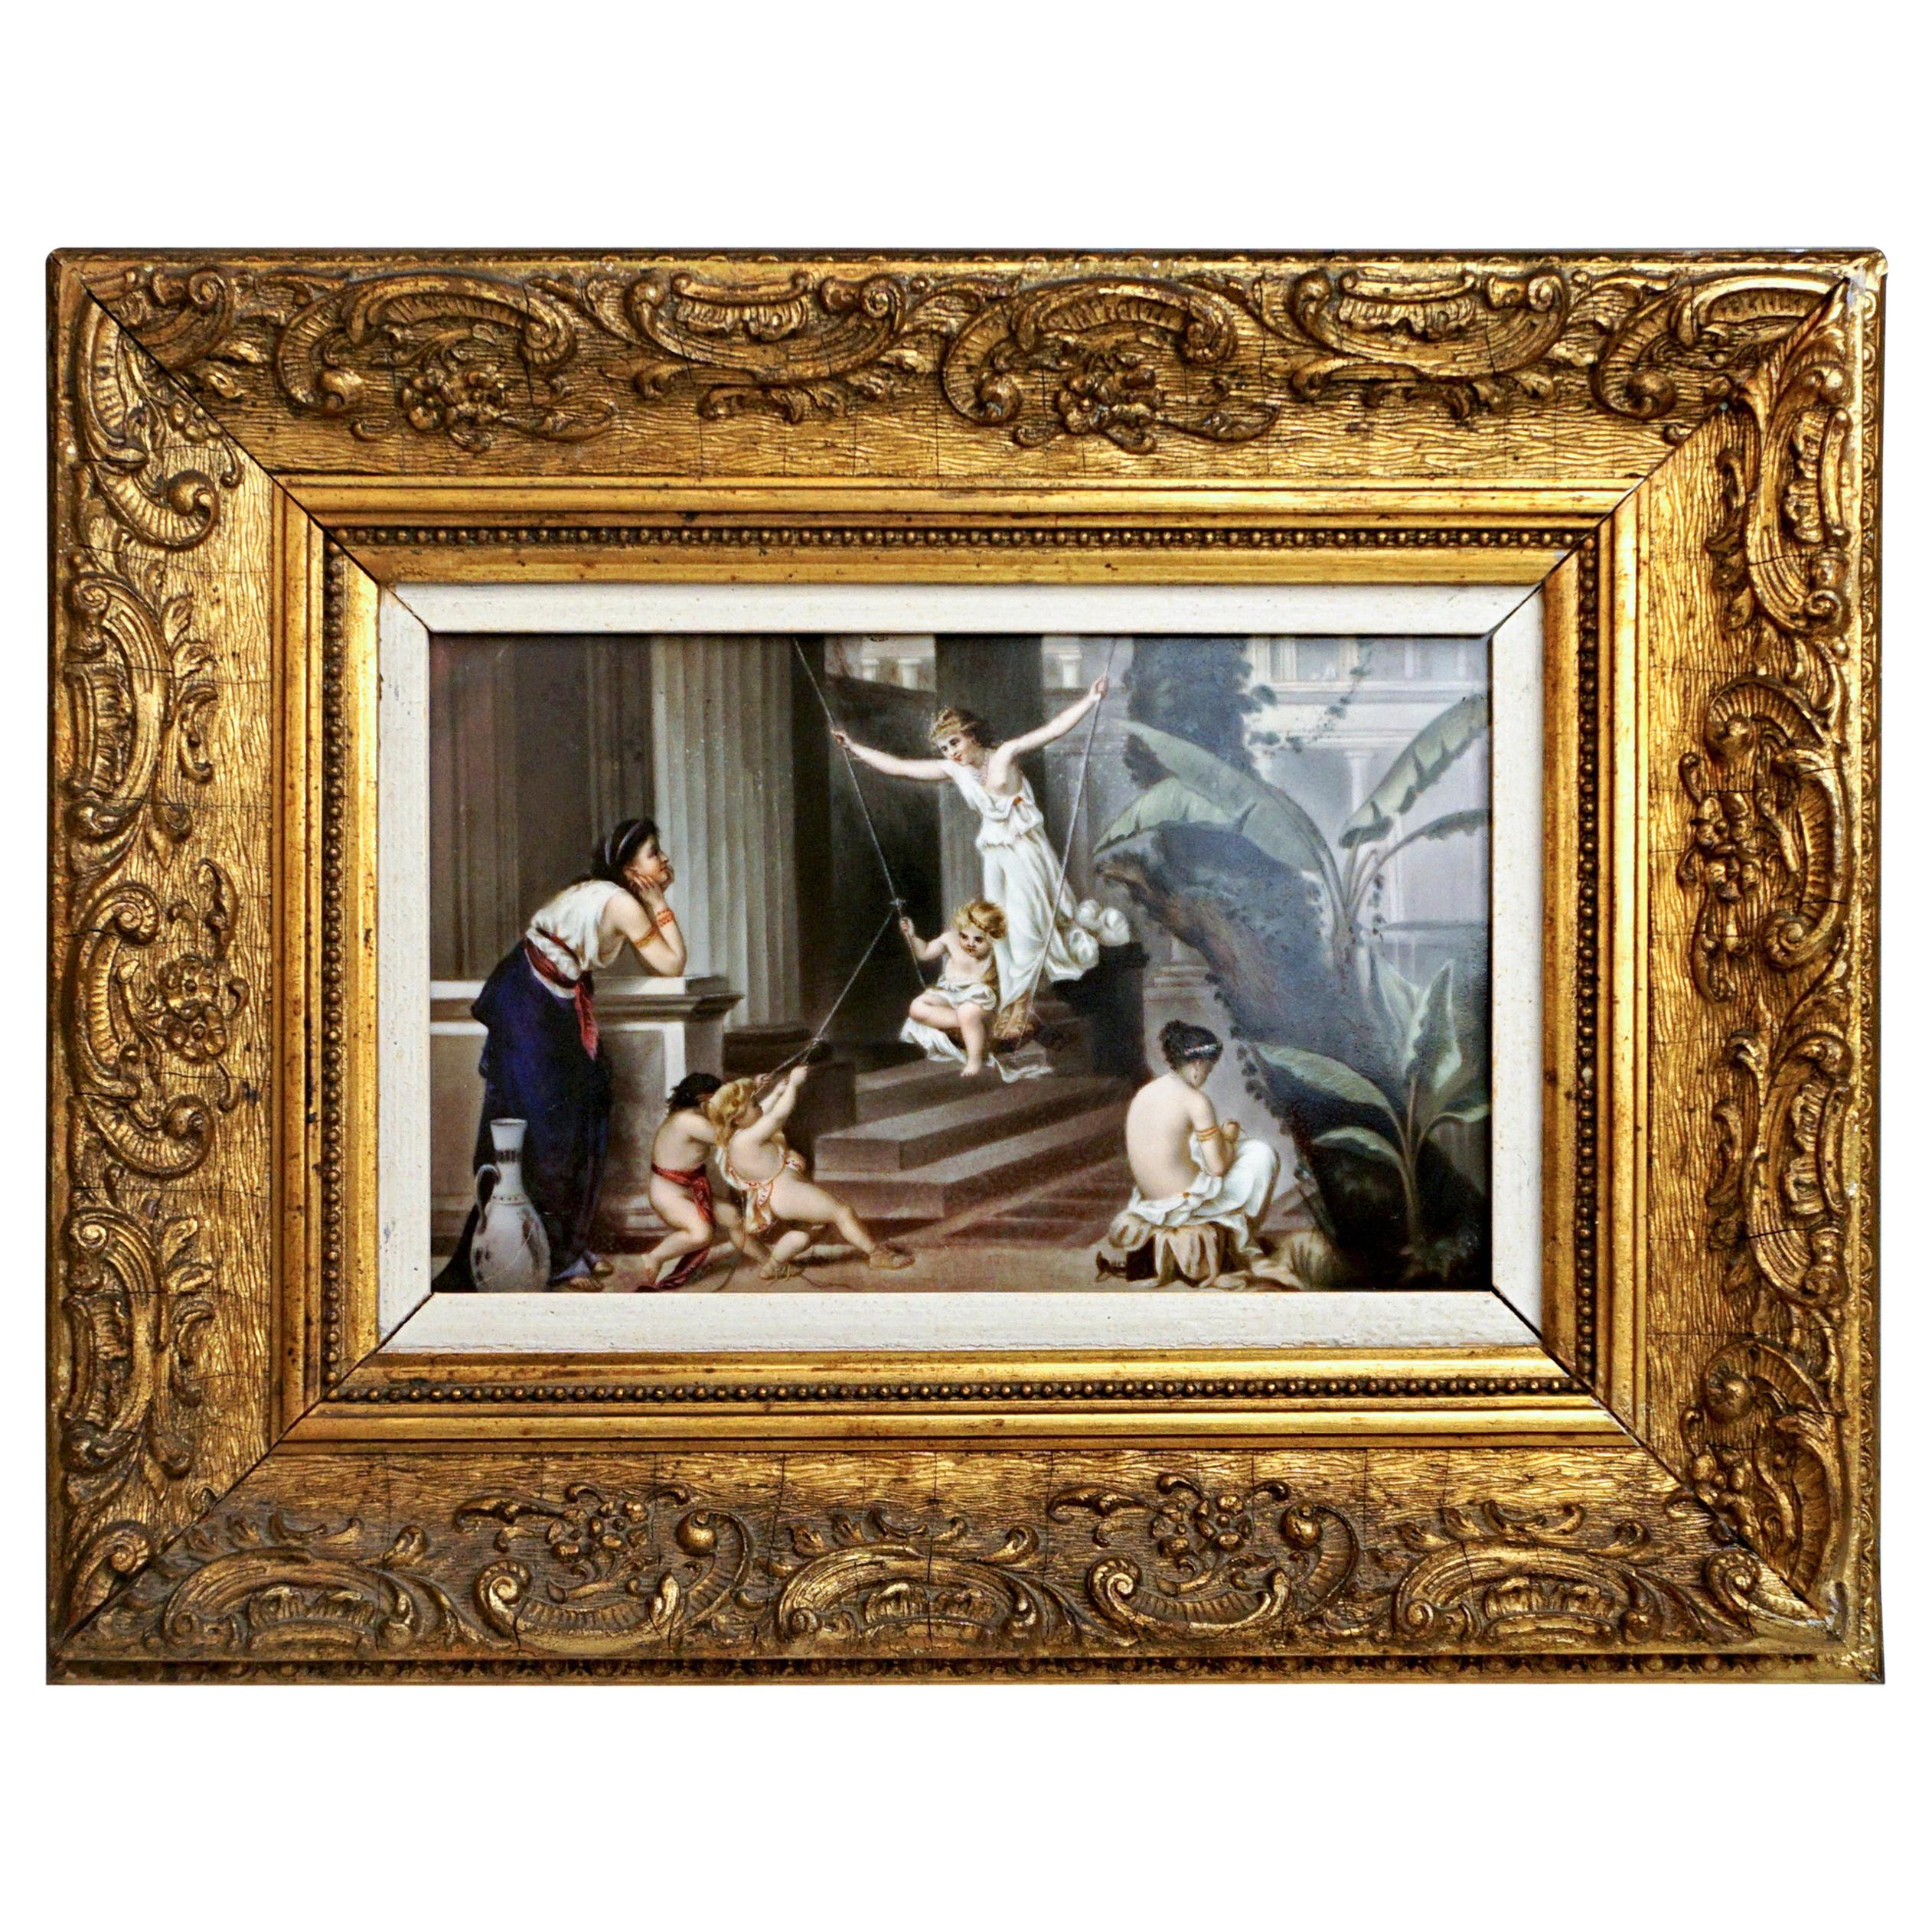 KPM Berlin Porcelain Plaque 'Nymphs and Cupids' Germany, circa 1870